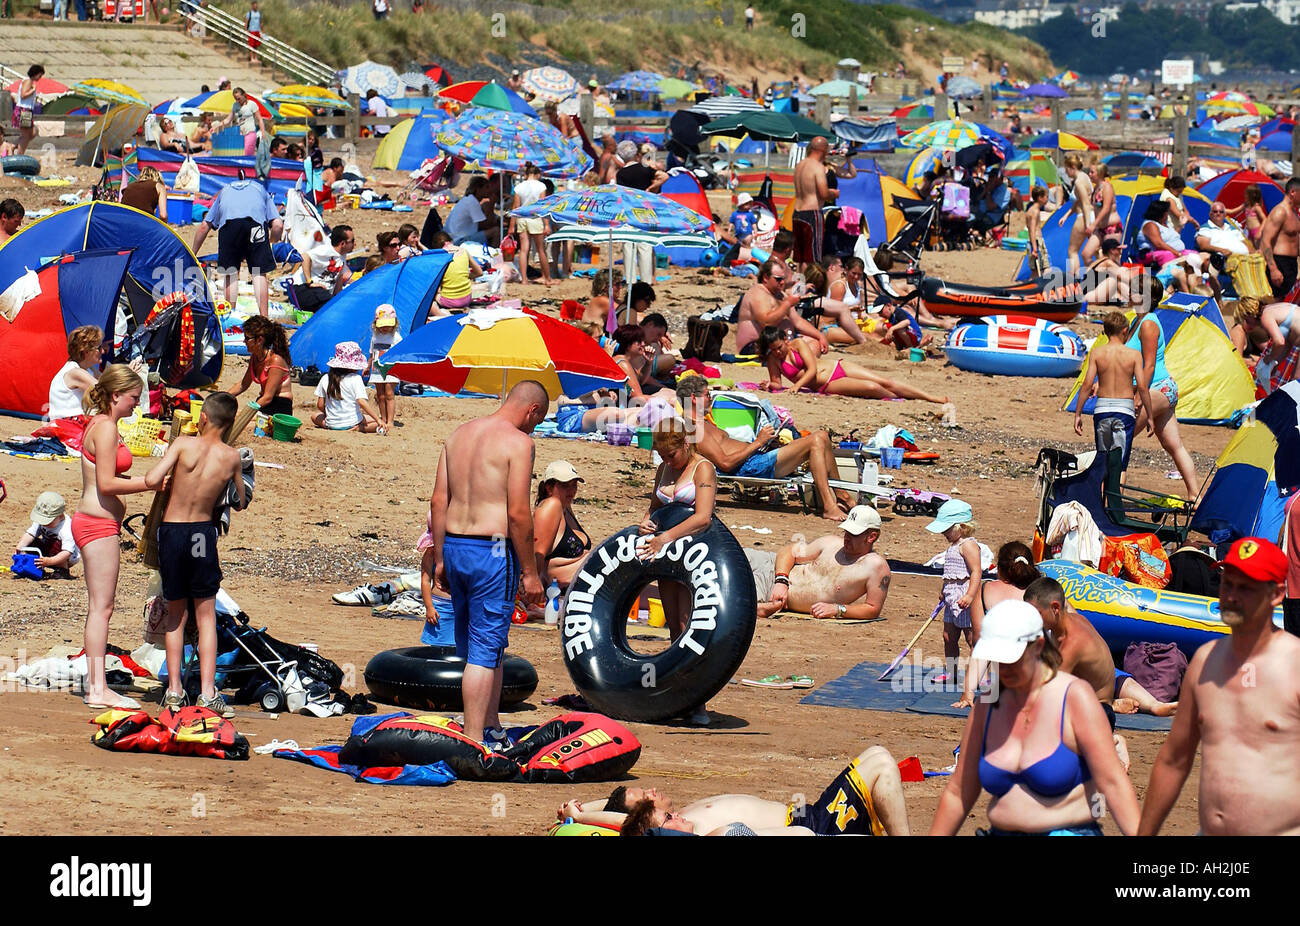 Sunseekers pack the beach at Dawlish Warren Devon on a hot Summer's day Stock Photo